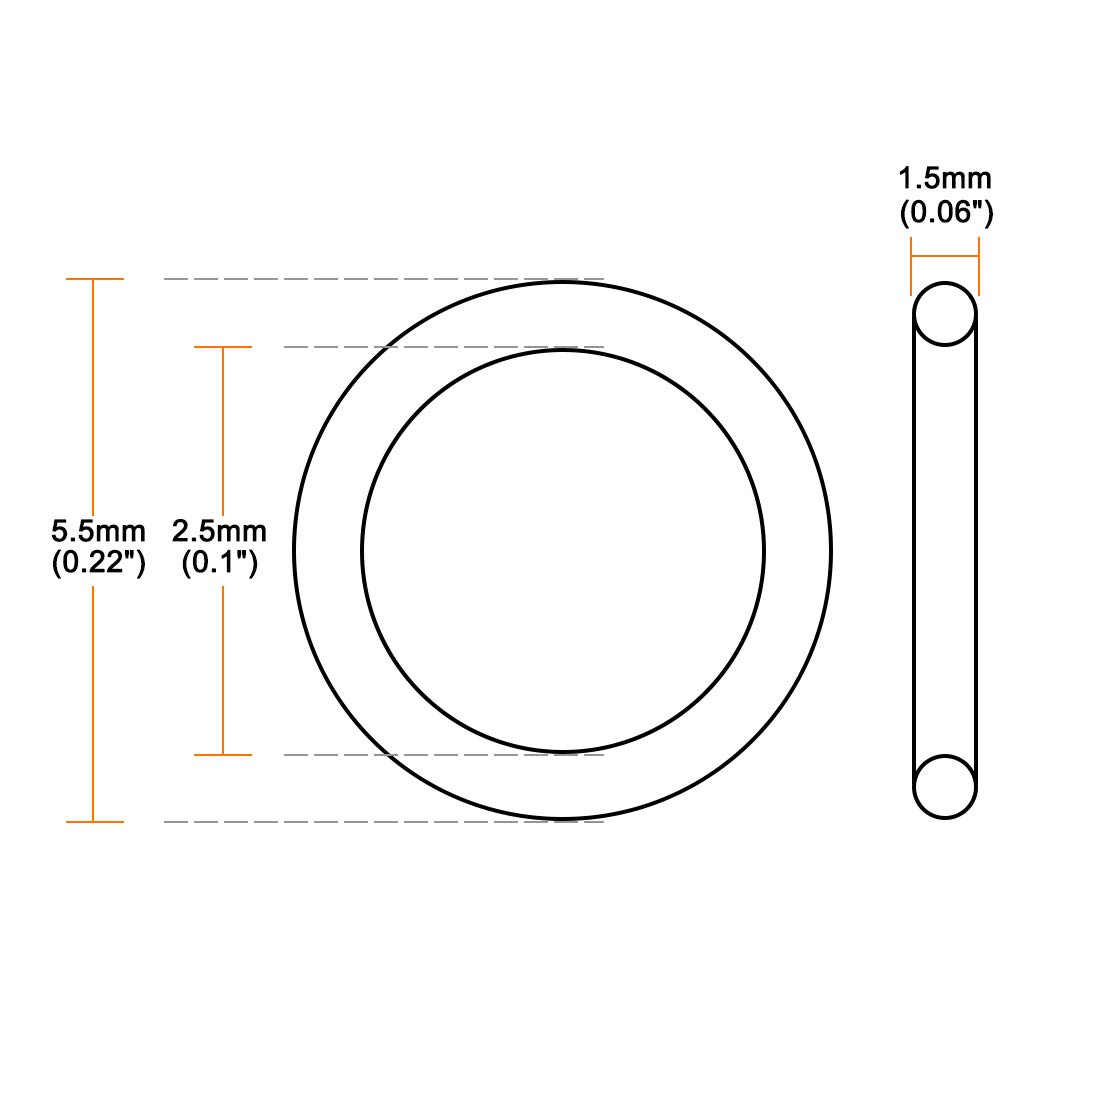 2.5mm Inner Diameter Seal Gasket White 20Pcs 1.5mm Width uxcell Silicone O-Rings 5.5mm OD